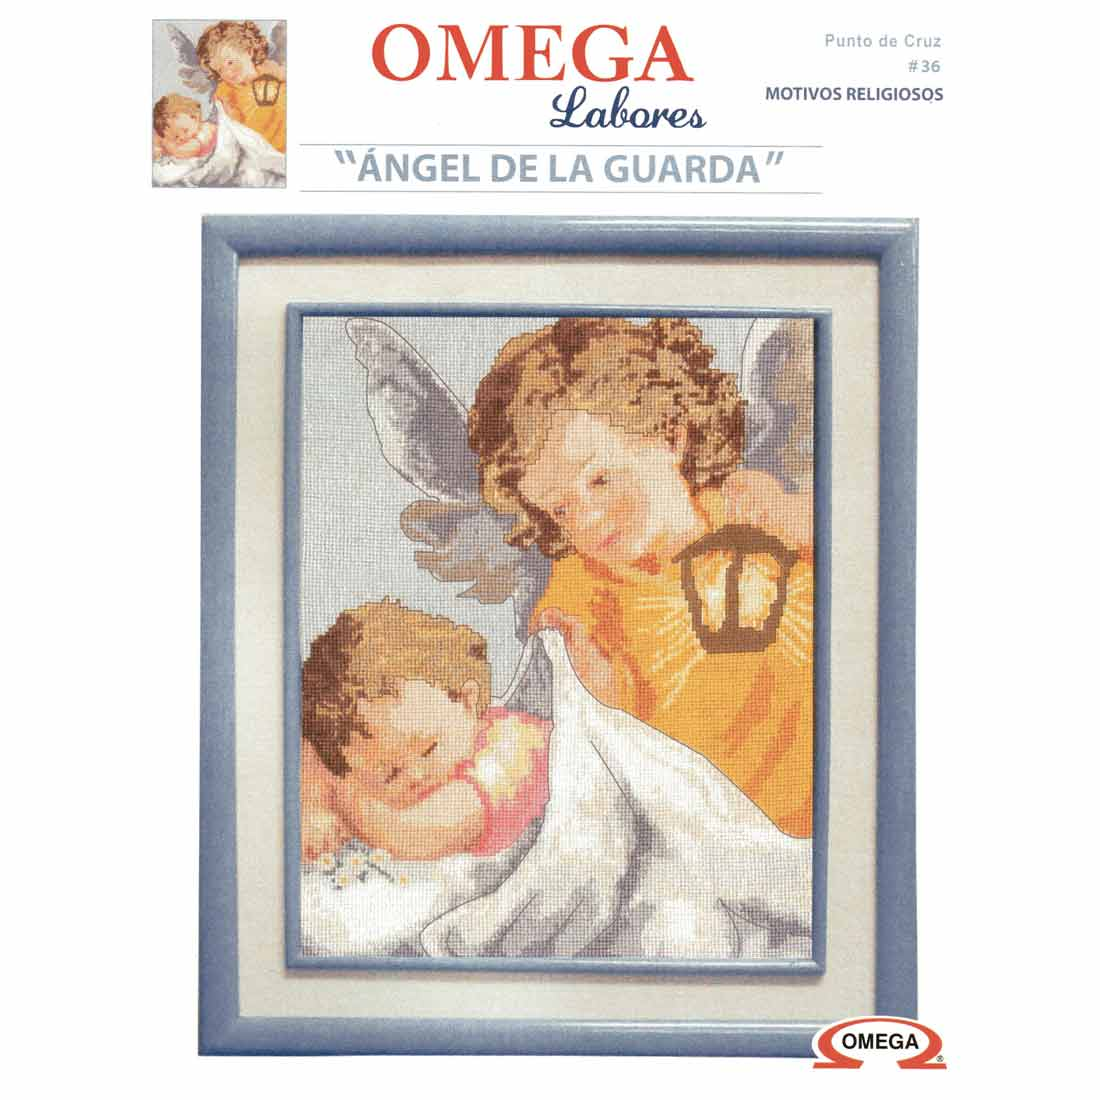 Kit para Bordar en Punto de Cruz Marca Omega, Ángel de la Guarda #36